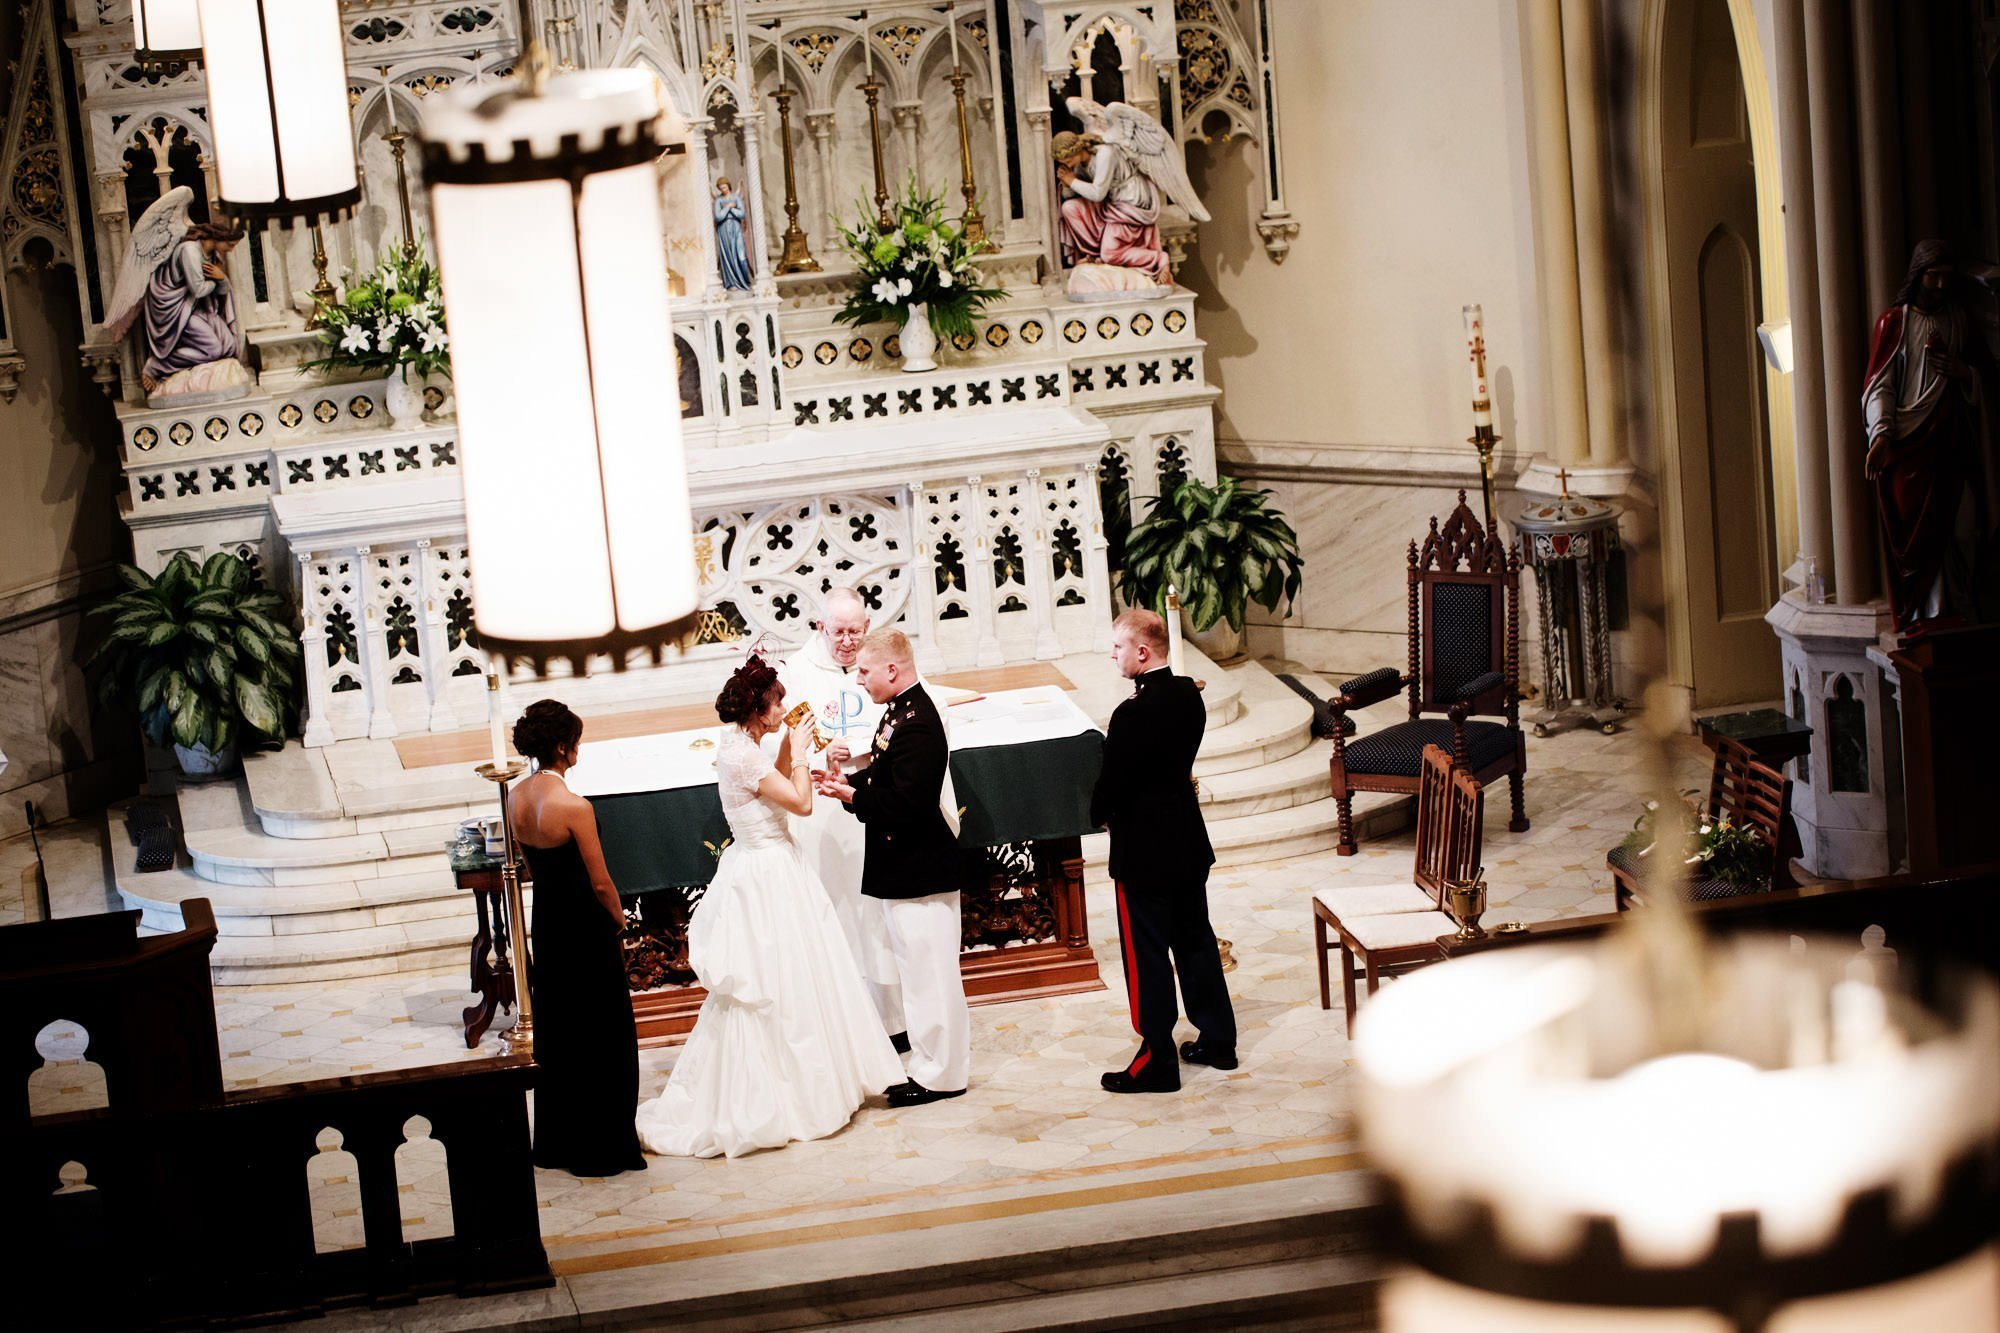 The bride and groom during their wedding ceremony at St. Mary's Catholic Church.